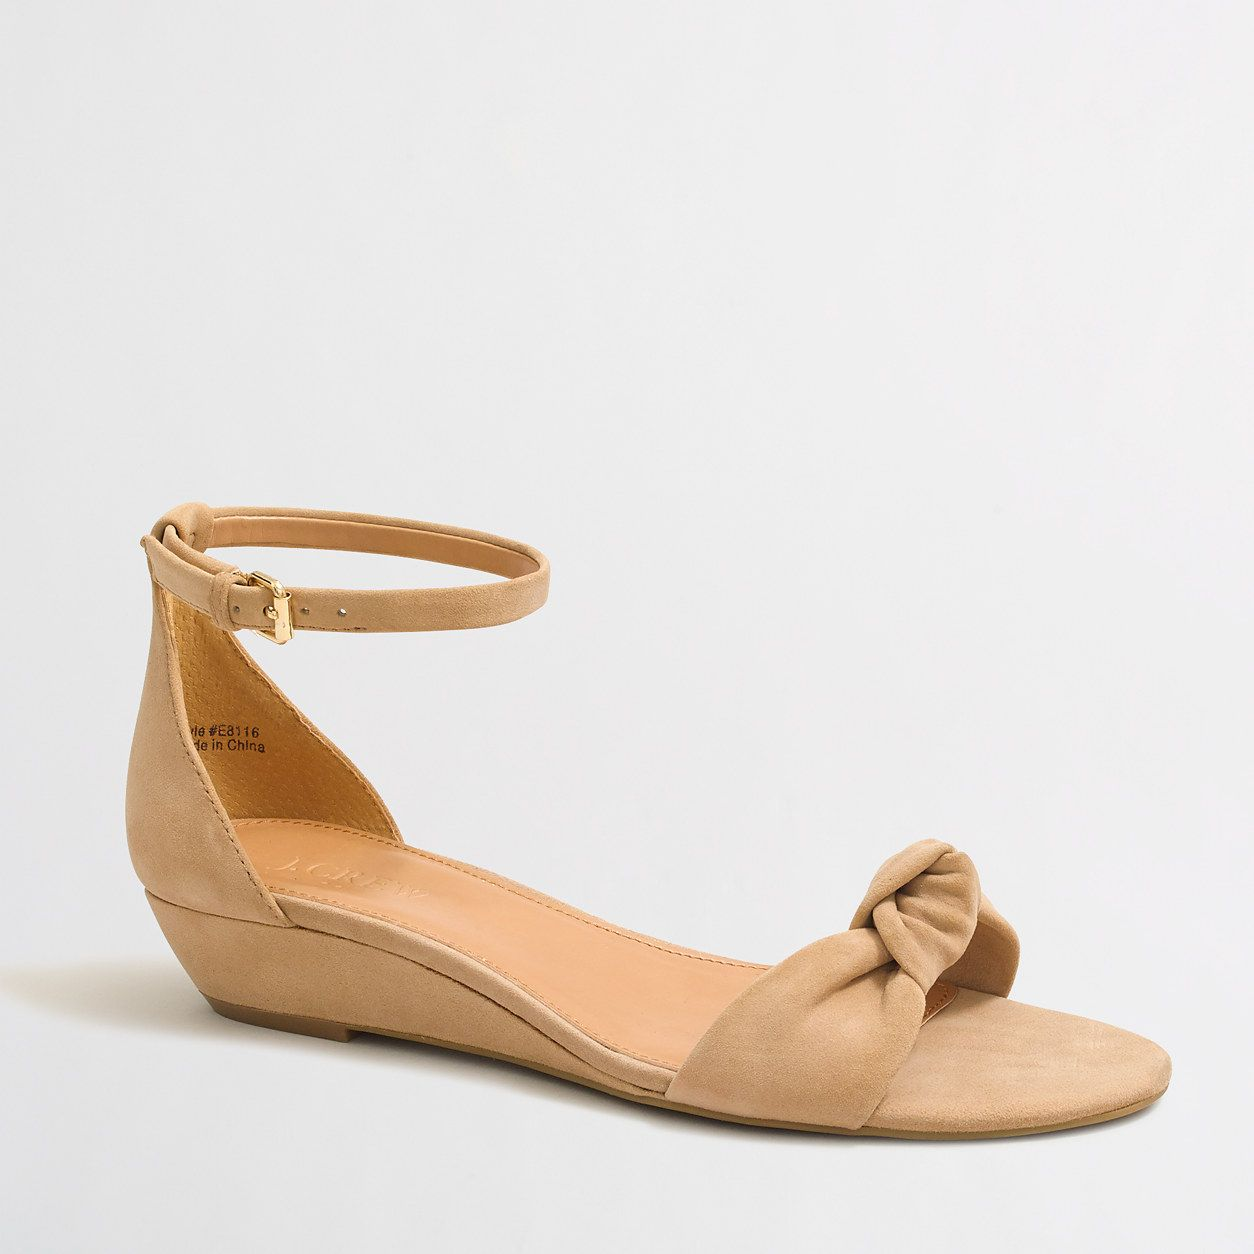 b1a77aae40f1 Suede demi-wedge sandals with top knot   FactoryWomen Sandals